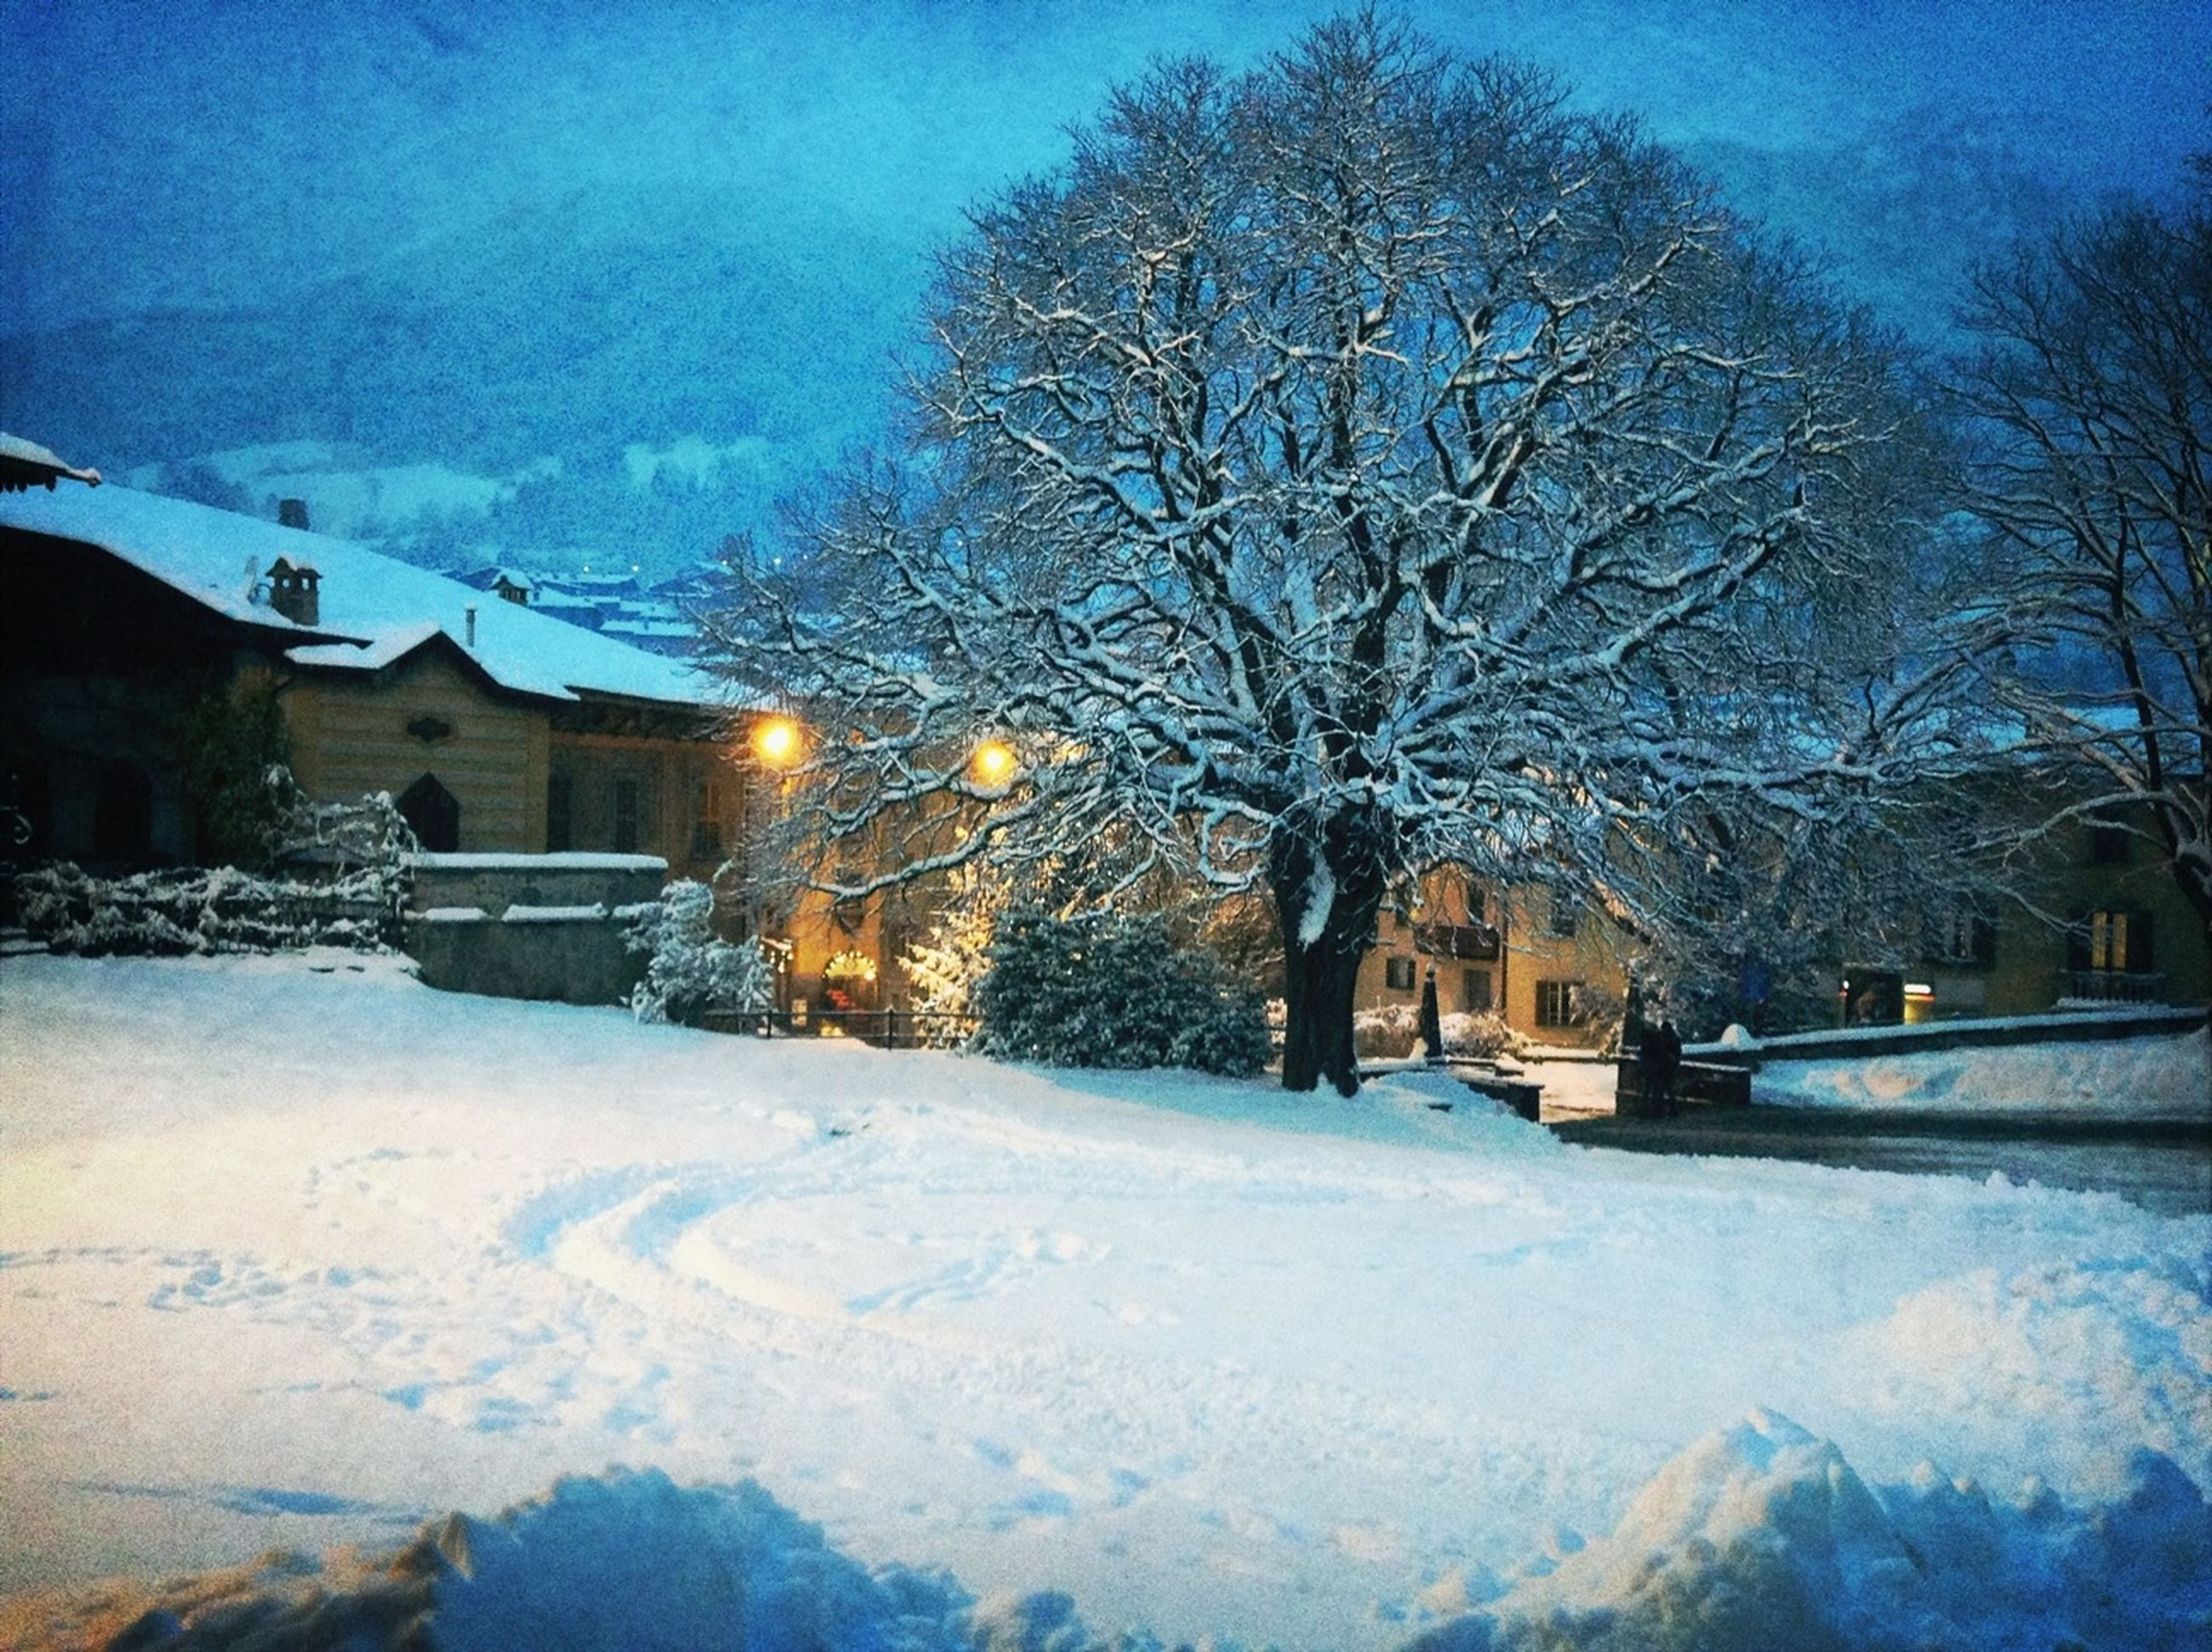 snow, winter, cold temperature, season, building exterior, bare tree, architecture, built structure, weather, house, tree, covering, sky, frozen, residential structure, residential building, illuminated, nature, street, dusk